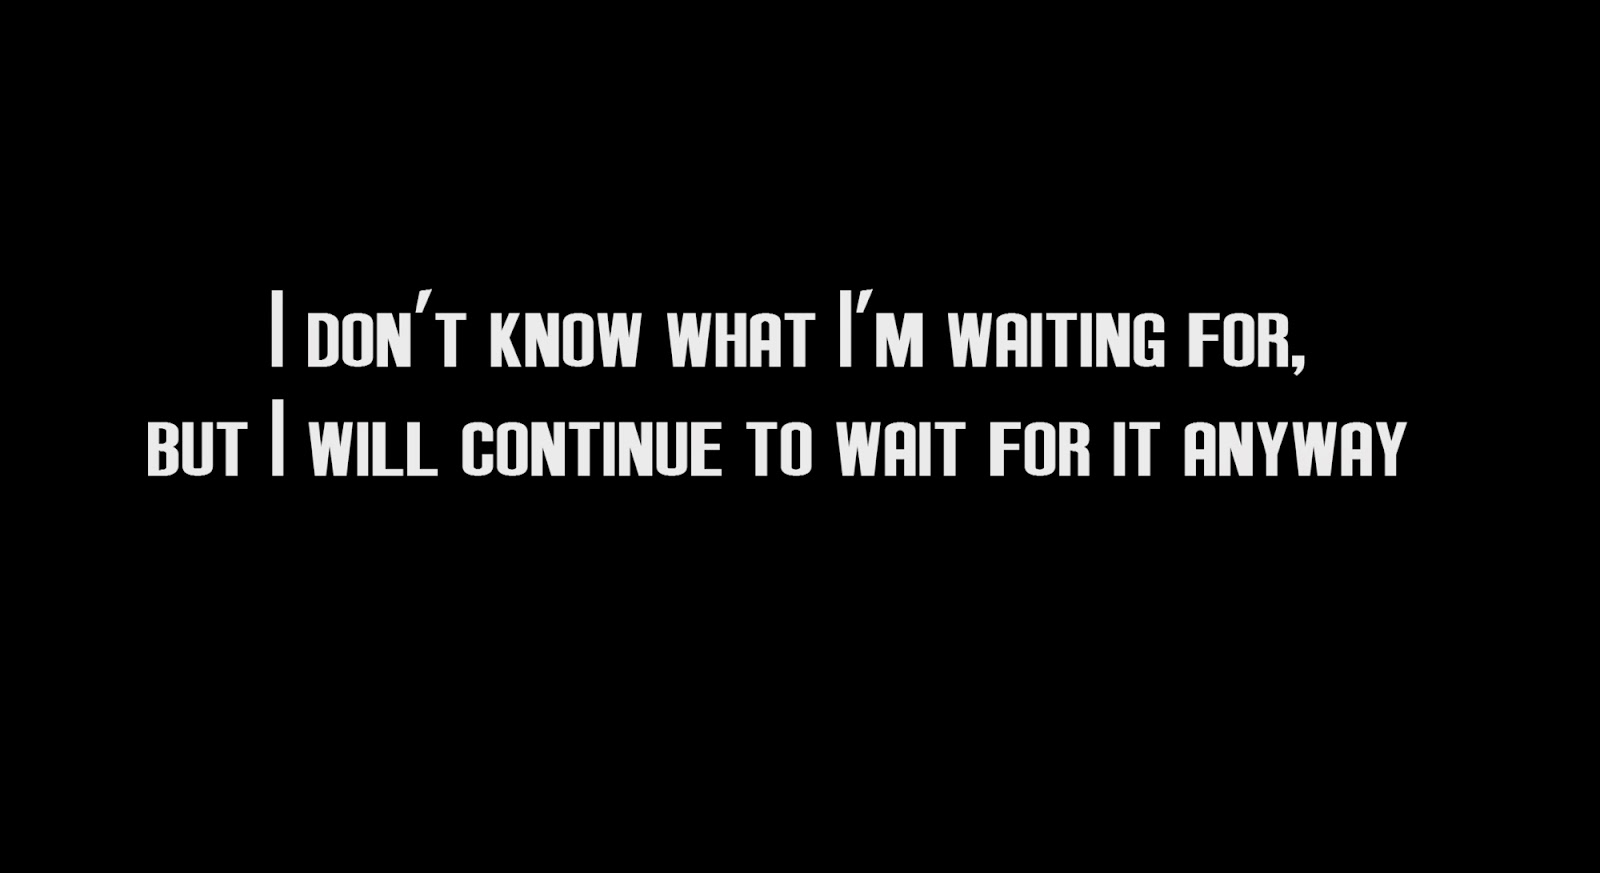 I don't know what I'm waiting for, but I will continue to waite for it anyway